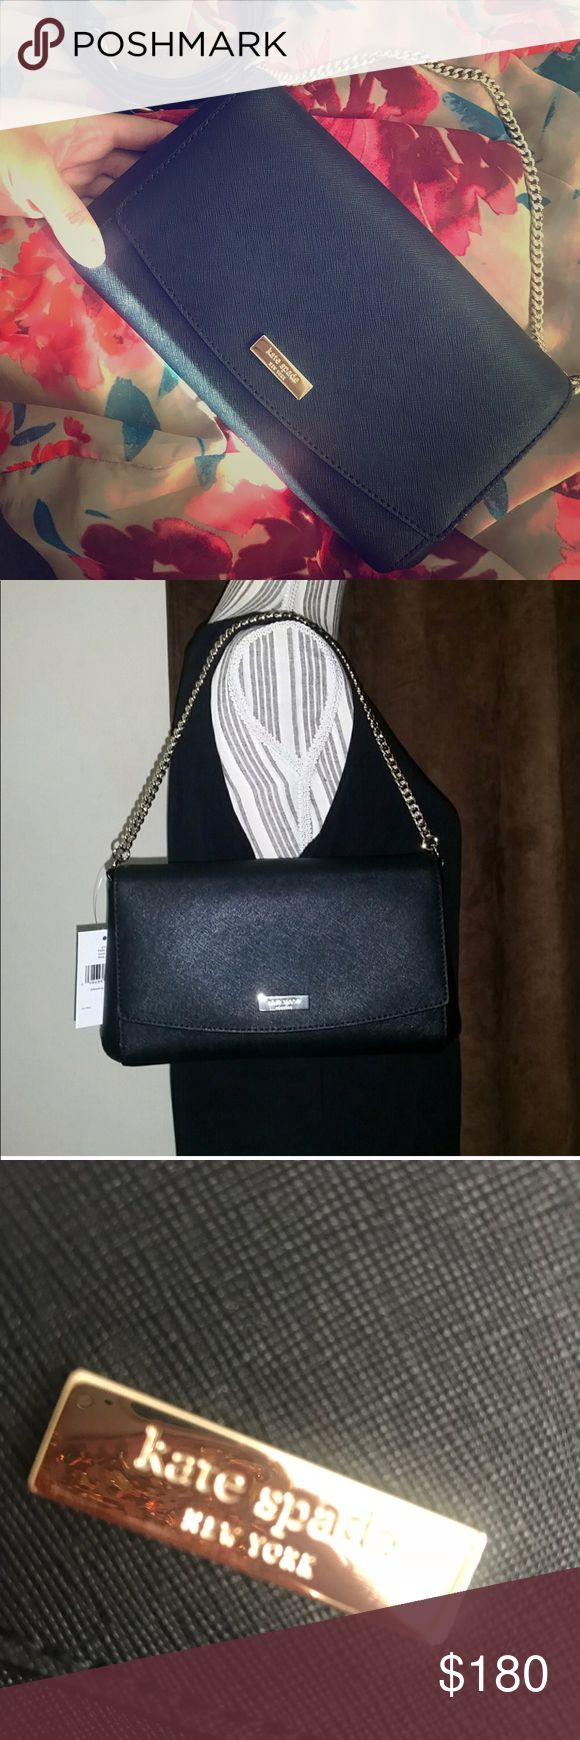 KATE SPADE Black Crossbody Purse 💋♠️ NEW! KATE SPADE Authentic Black Crossbody Purse/ Purchased From Fellow Posher w/ Tags No Tags for this/ Perfect Condition/ Clean/ Never Used for Trip/Dimension: 10in x 6in x 2in/Smoke Free kate spade Bags Crossbody Bags